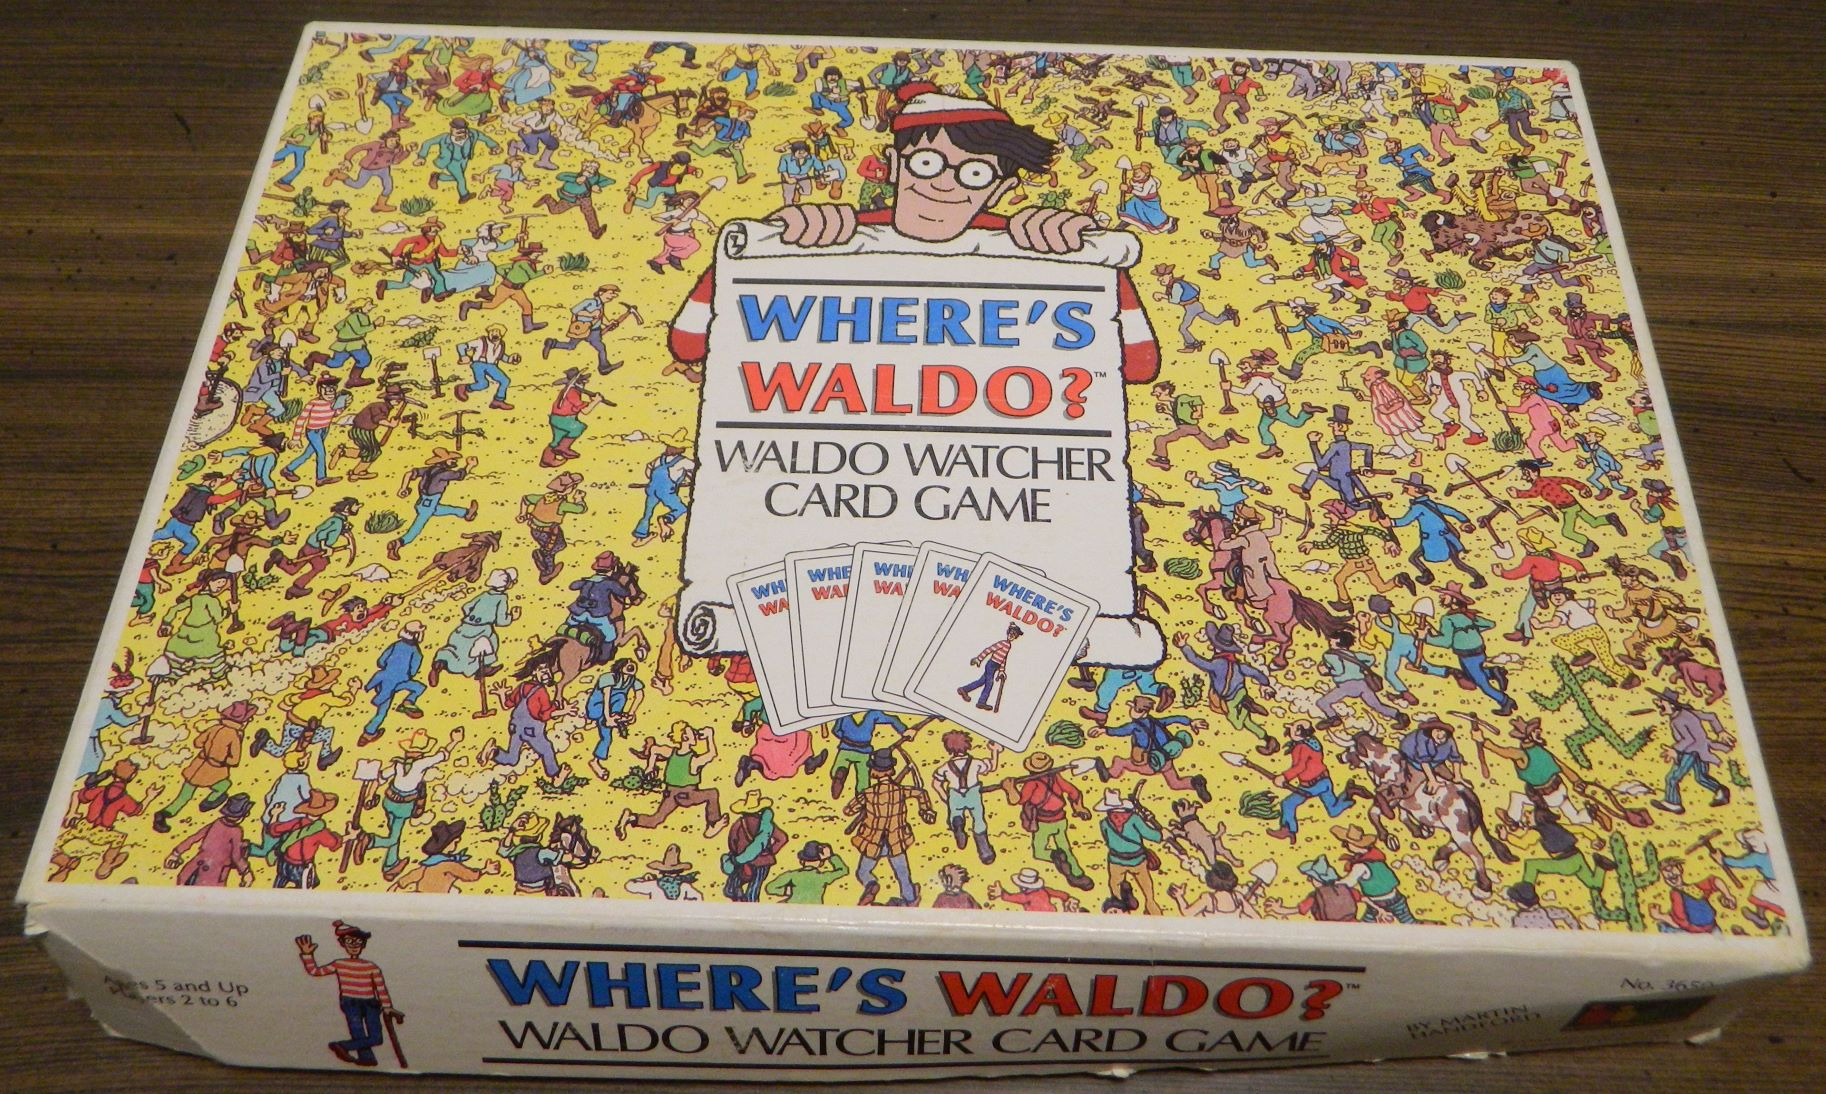 Box for Where's Waldo? Waldo Watcher